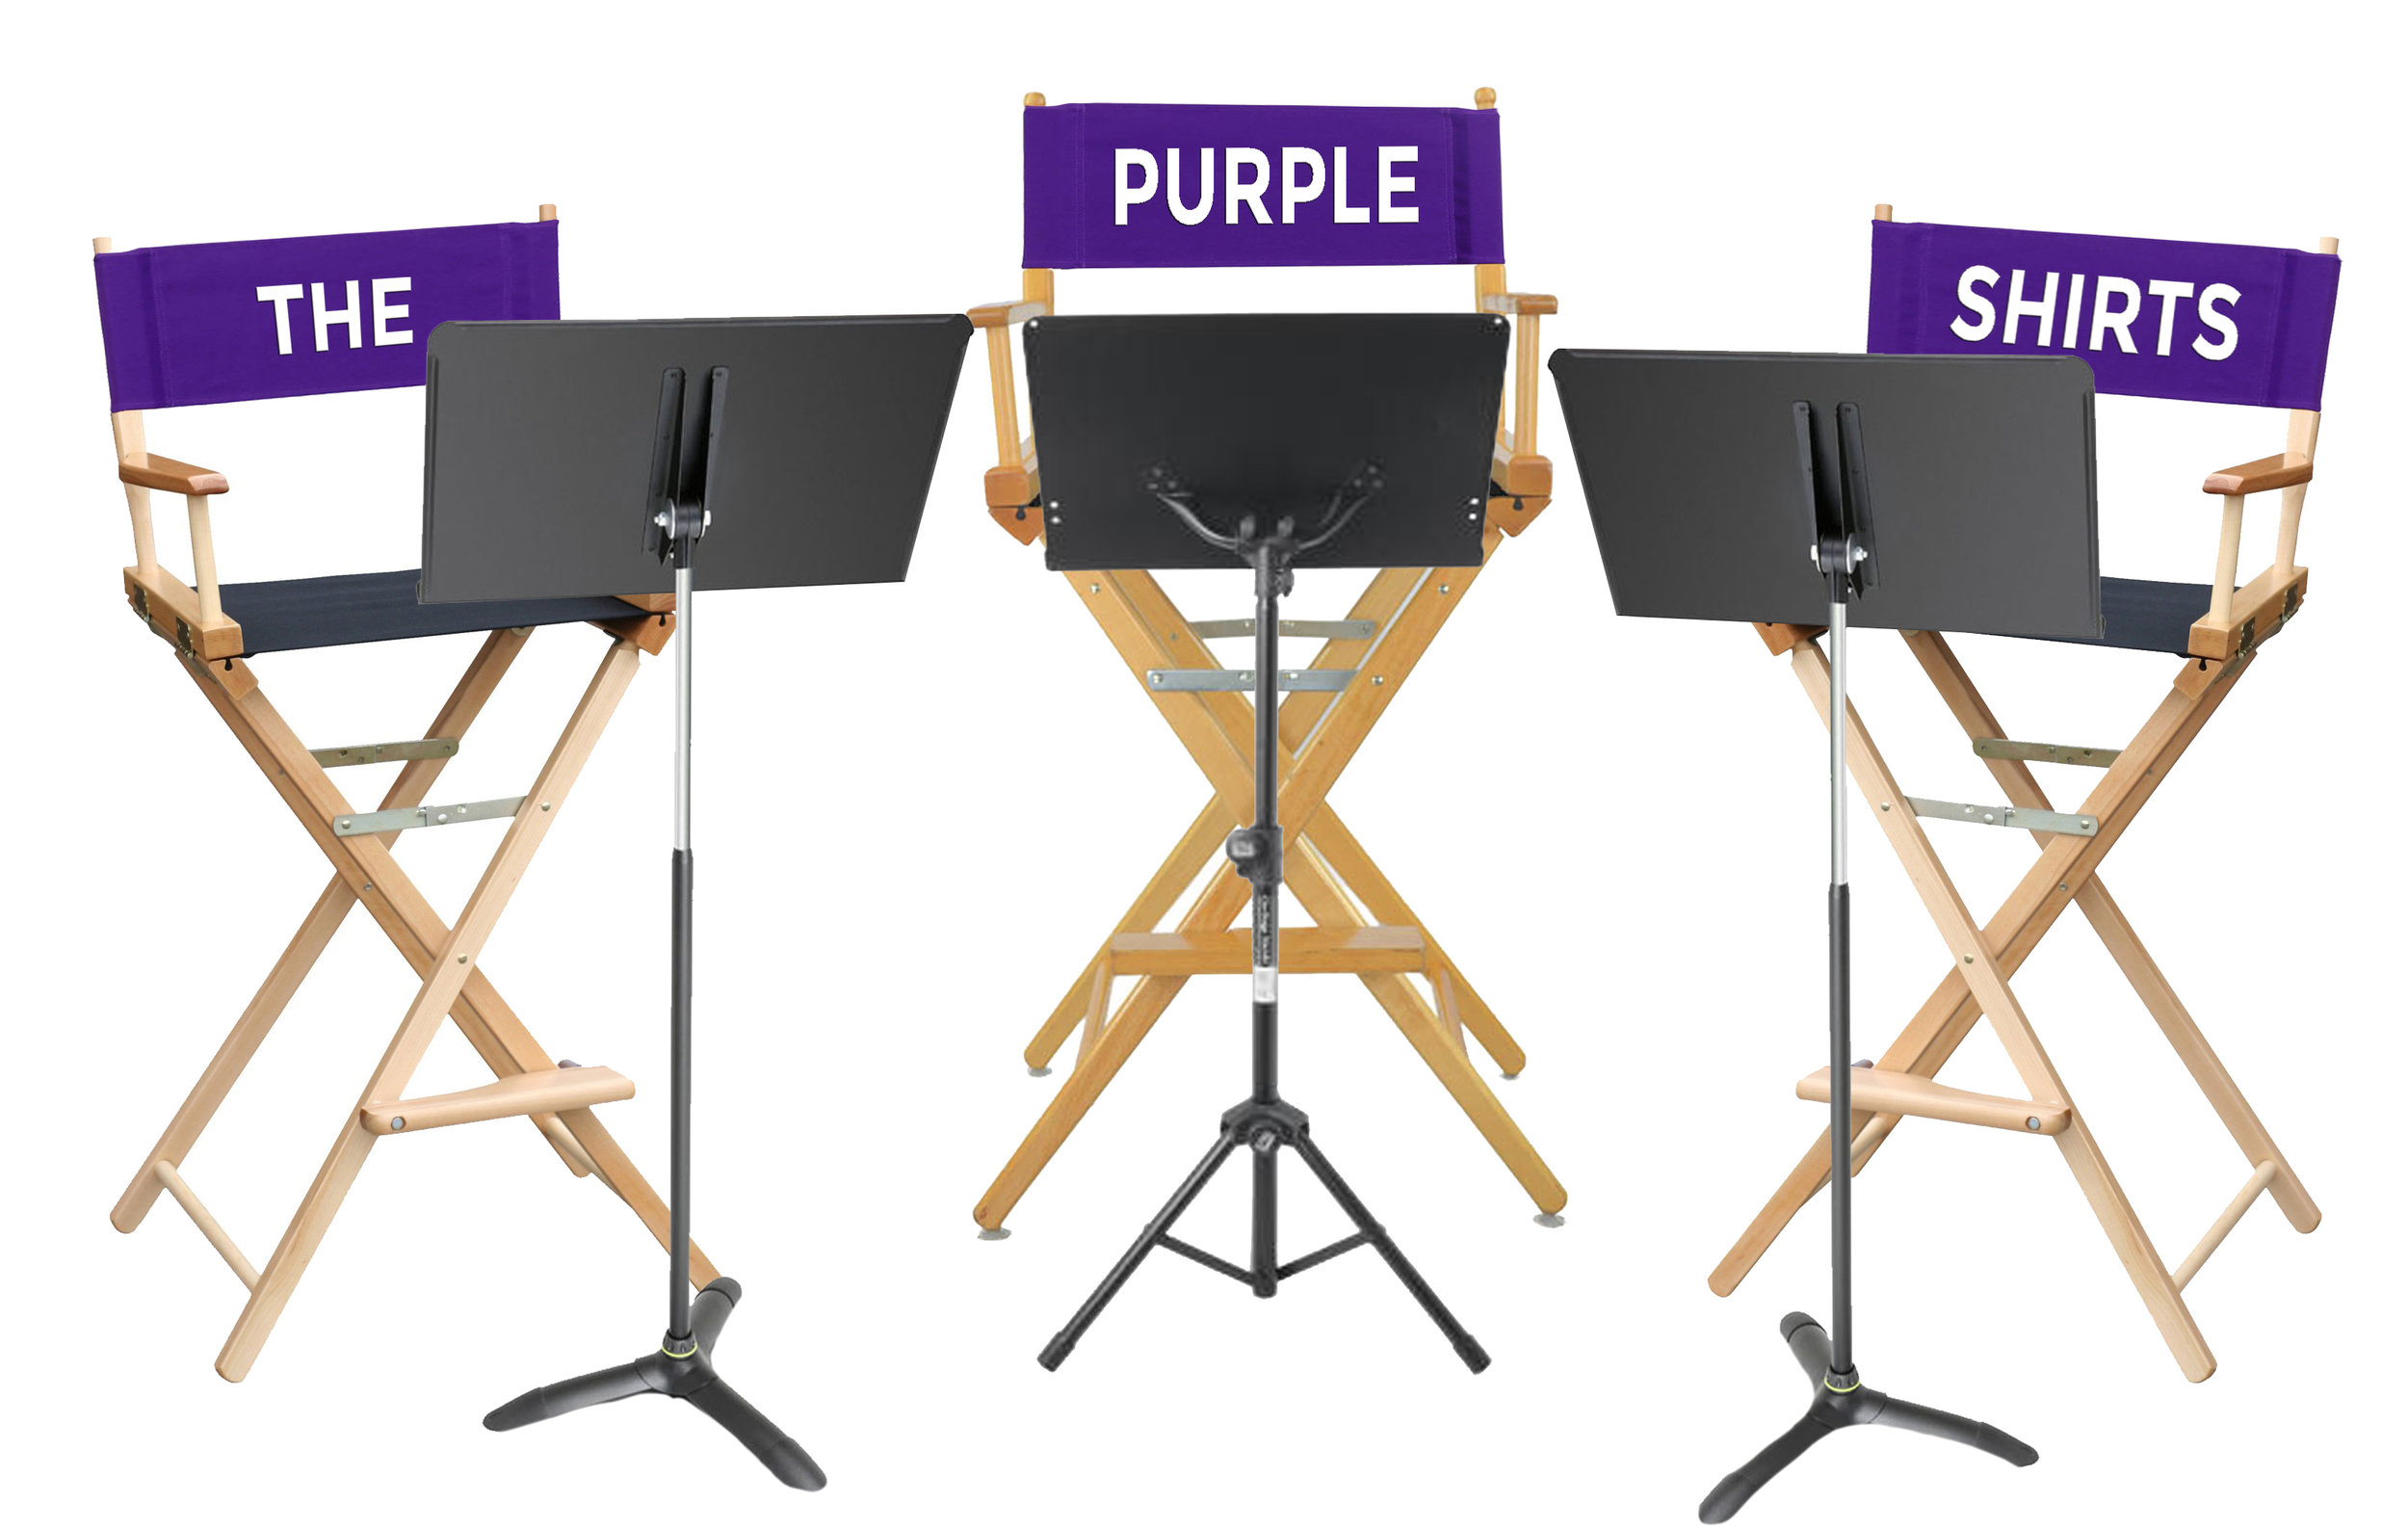 Bitter Jester_Purple Shirts_Three Chairs.jpg